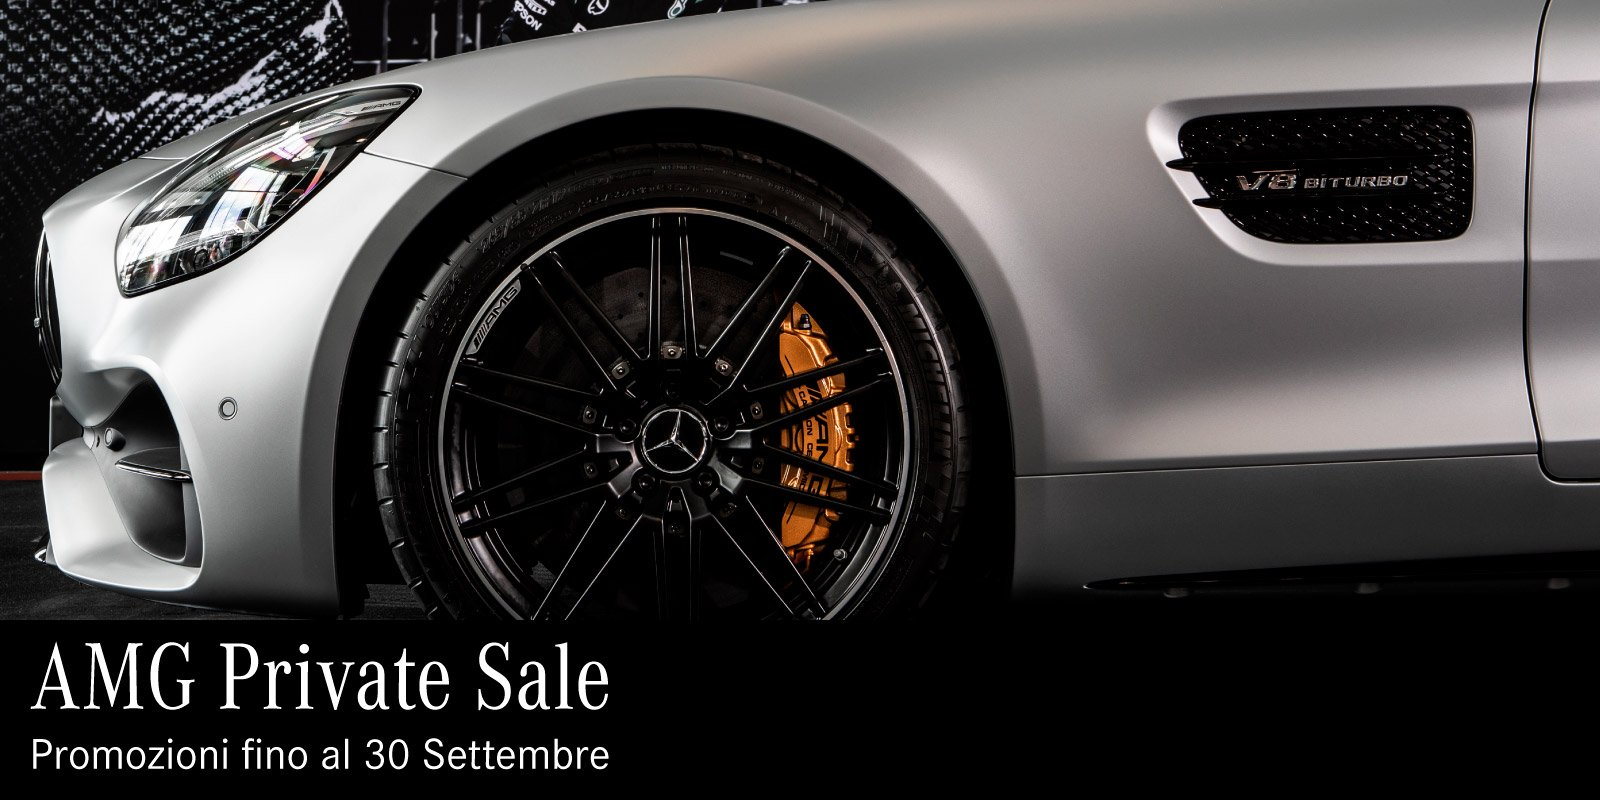 AMG Private Sale